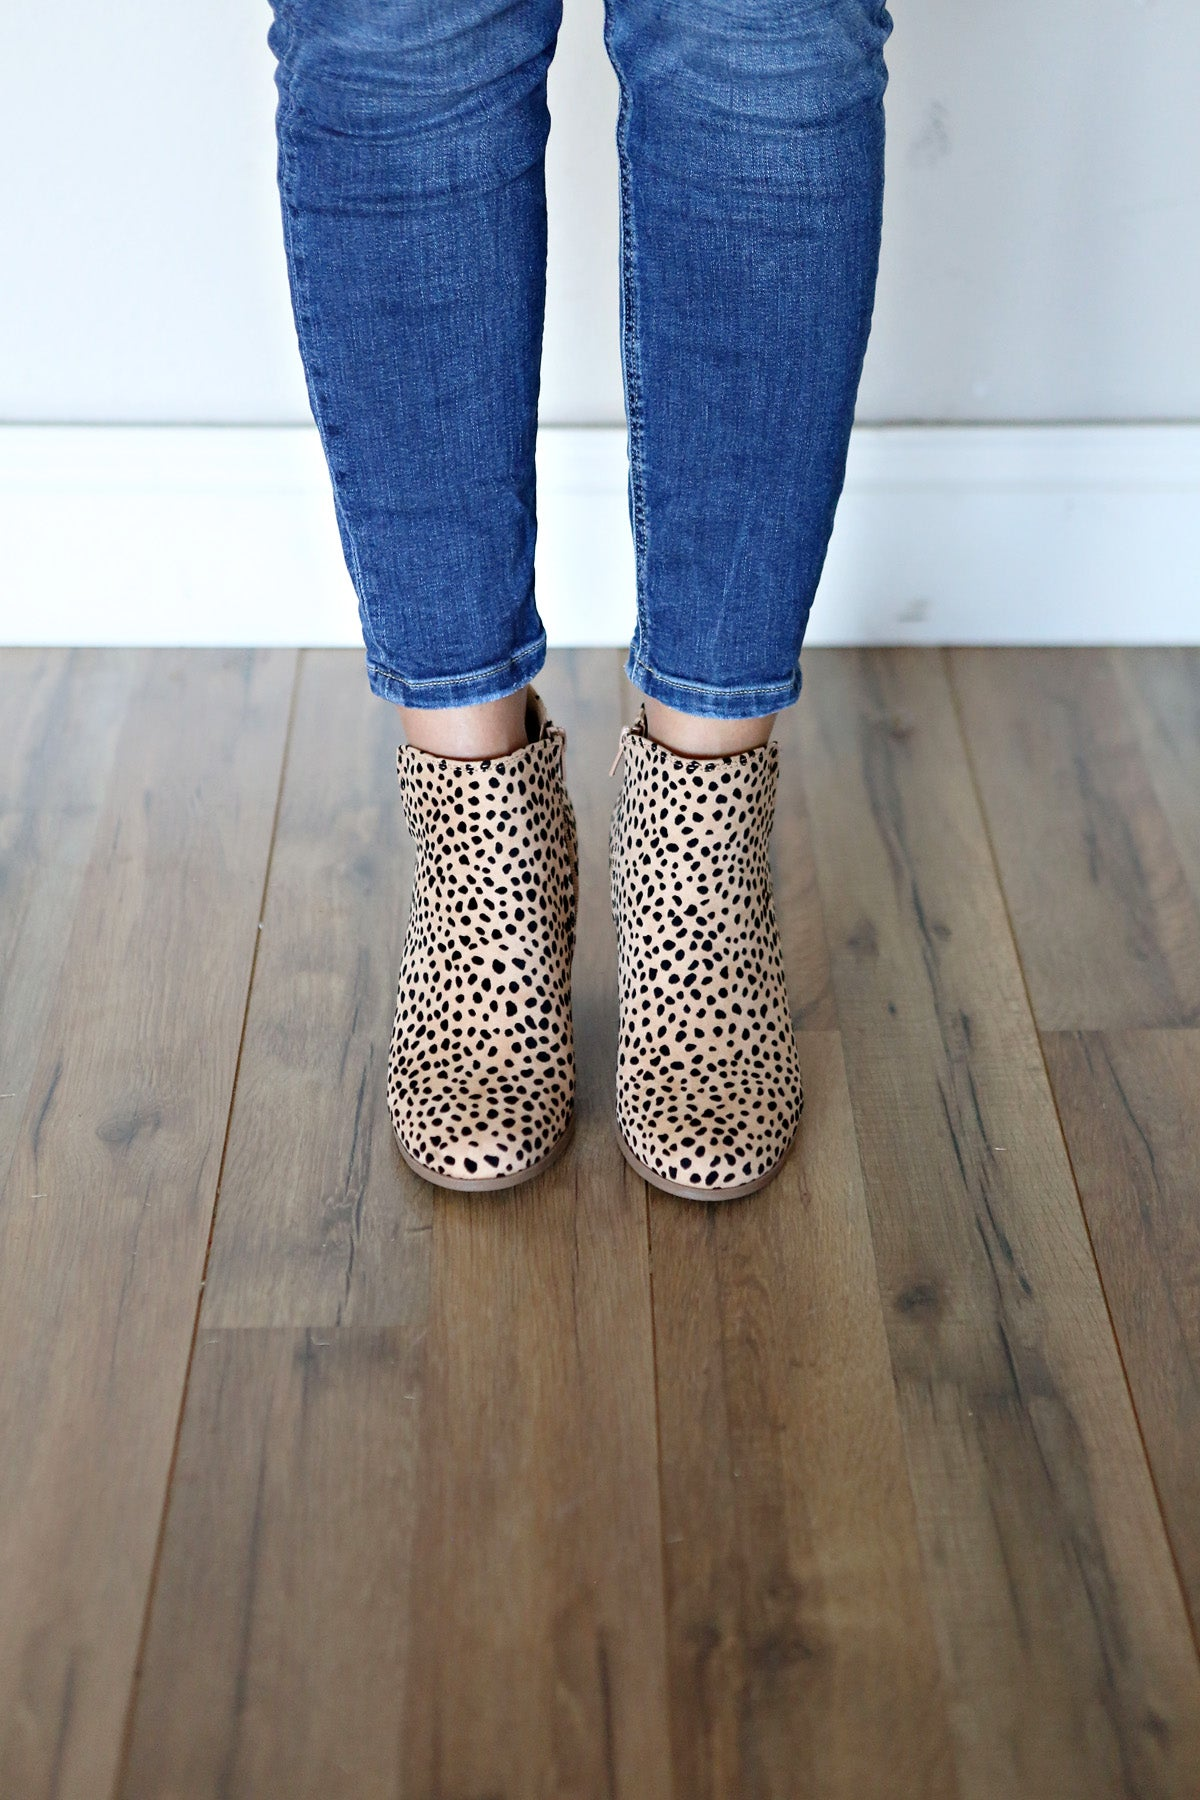 Leopard Wedge Booties - FINAL SALE